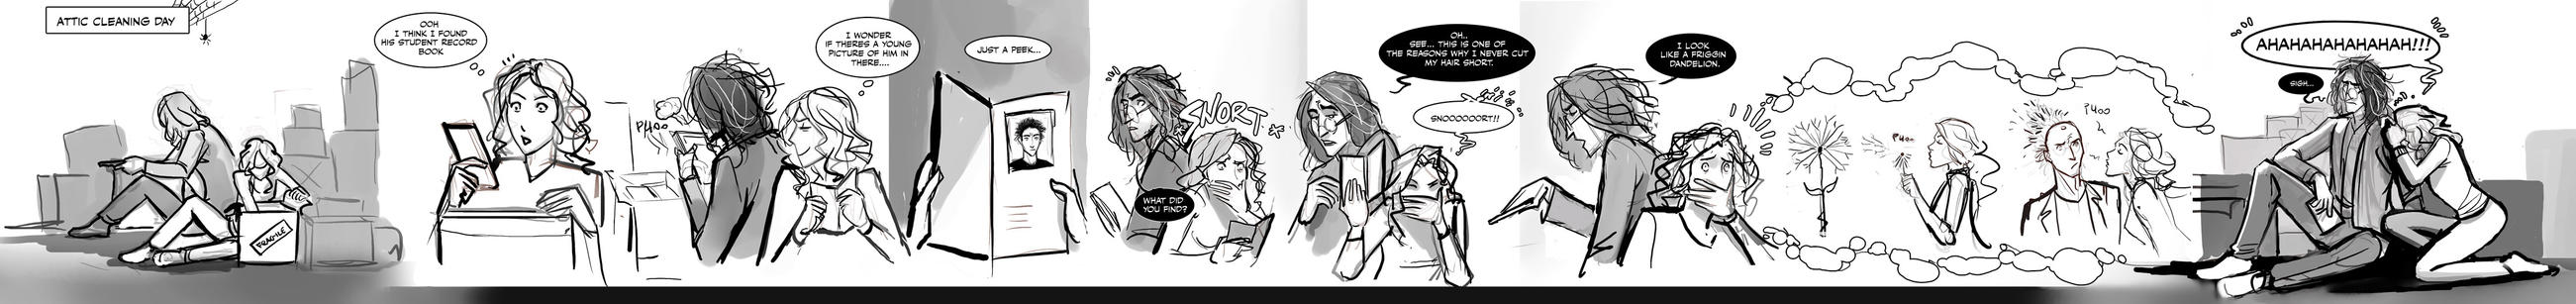 don't give her ideas XD by sigeel